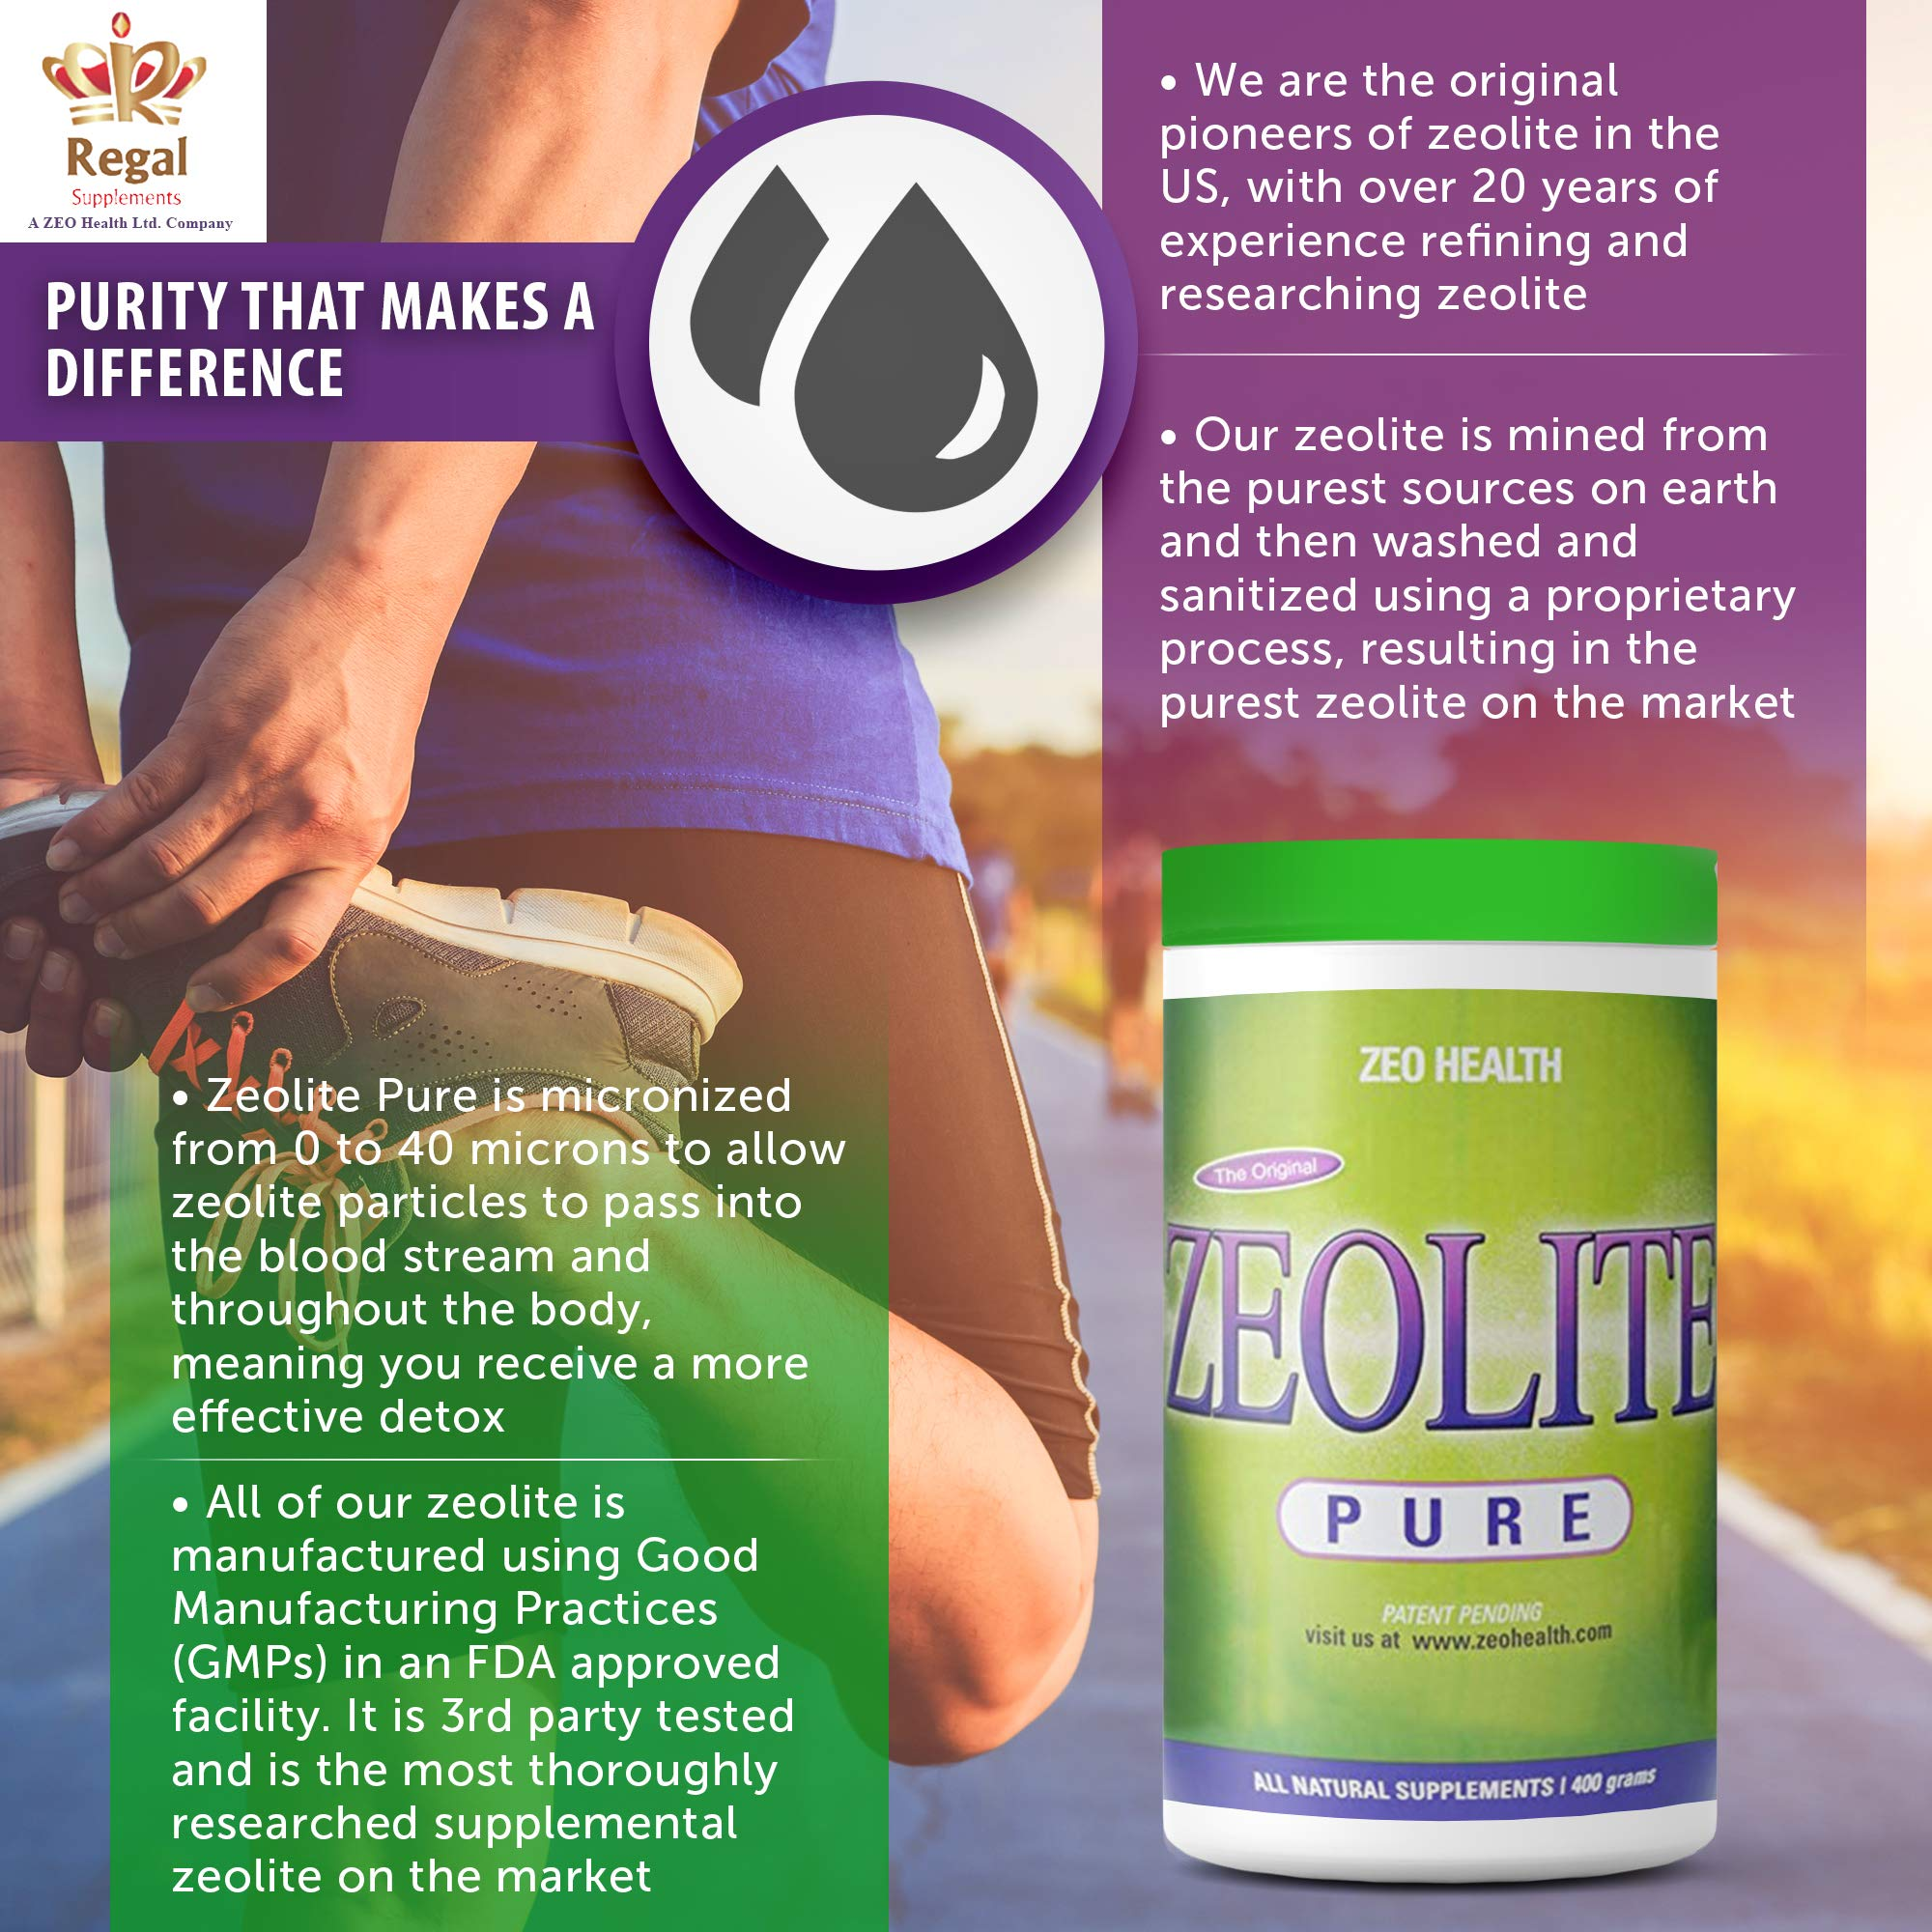 ZEOLITE PURE | Full Body Detox Cleanse | Safe, Gentle, & Effective Energy Booster that Supports Gut Health, Mental Clarity, & Healthy Inflammation Response| Original Zeolite Powder (400 Servings) by ZEOLITE PURE (Image #7)